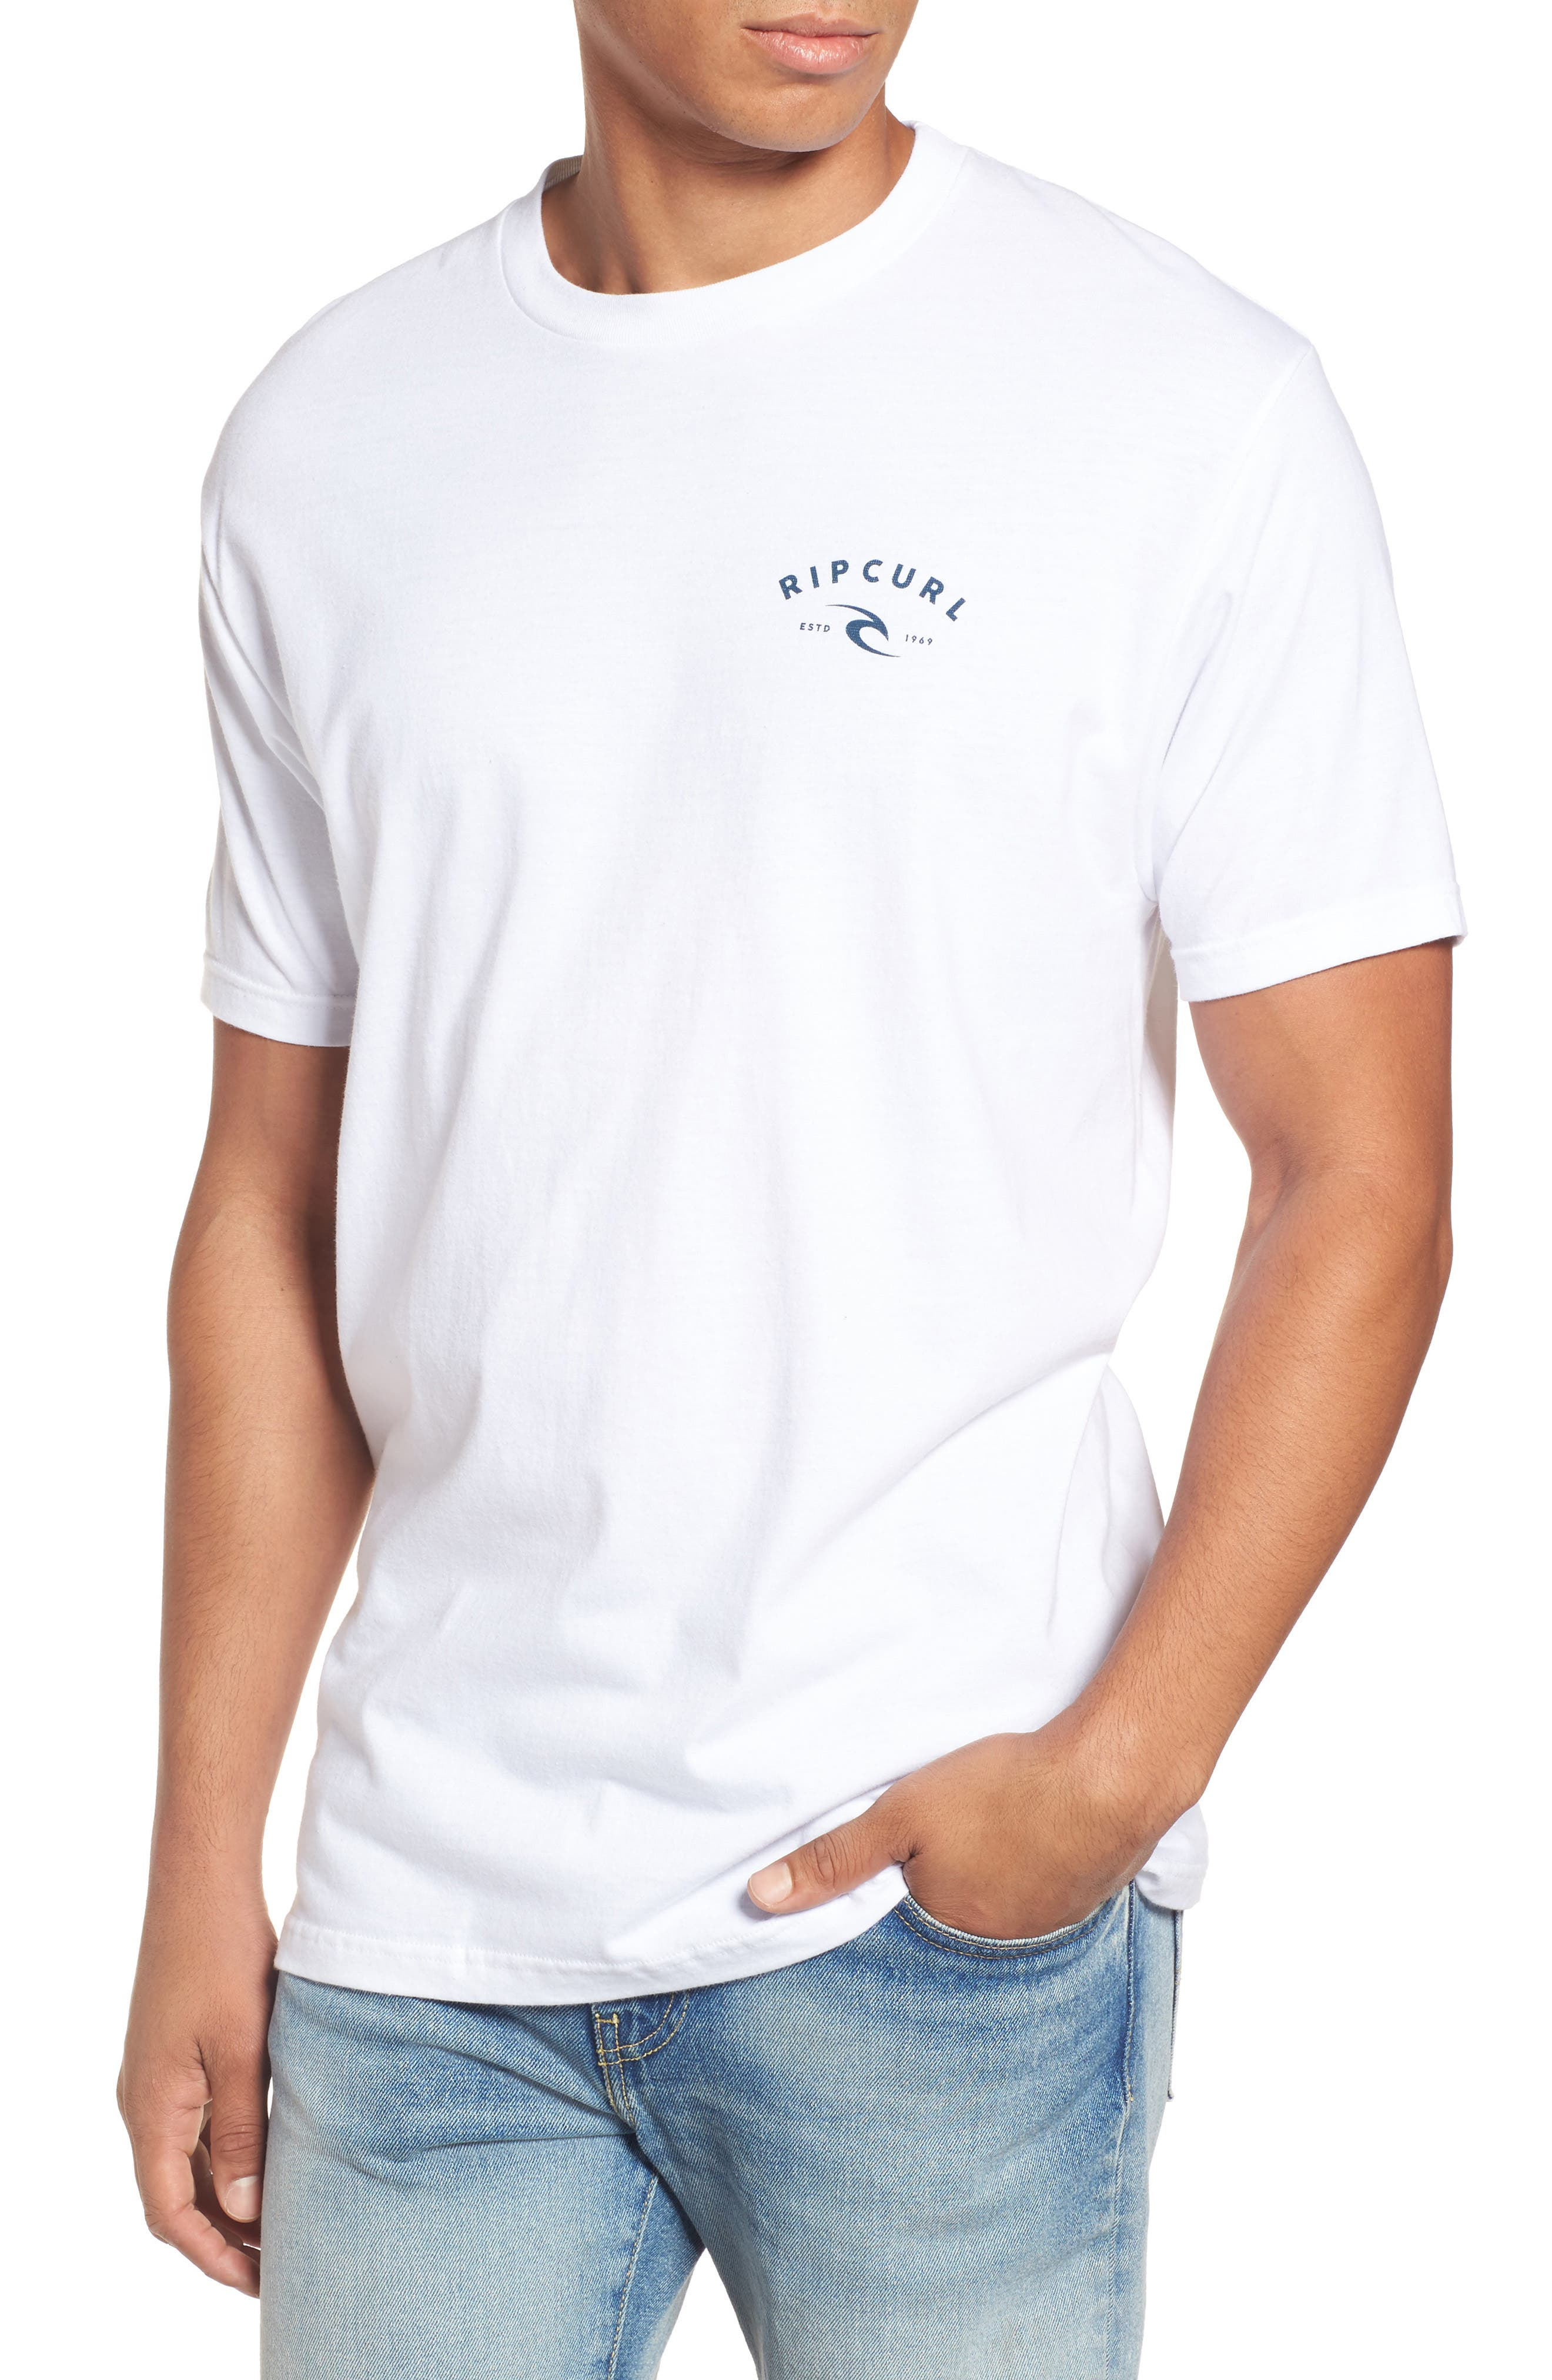 Alternate Image 1 Selected - Rip Curl Down South Heather Logo Graphic T-Shirt